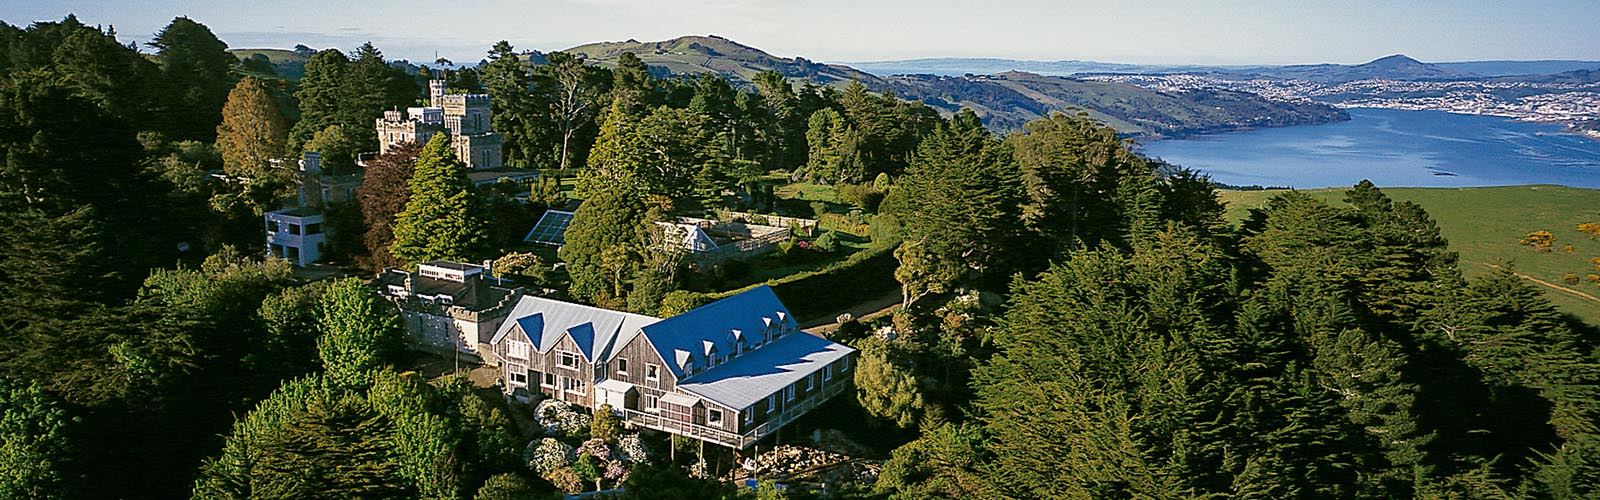 Larnach Castle and Gardens